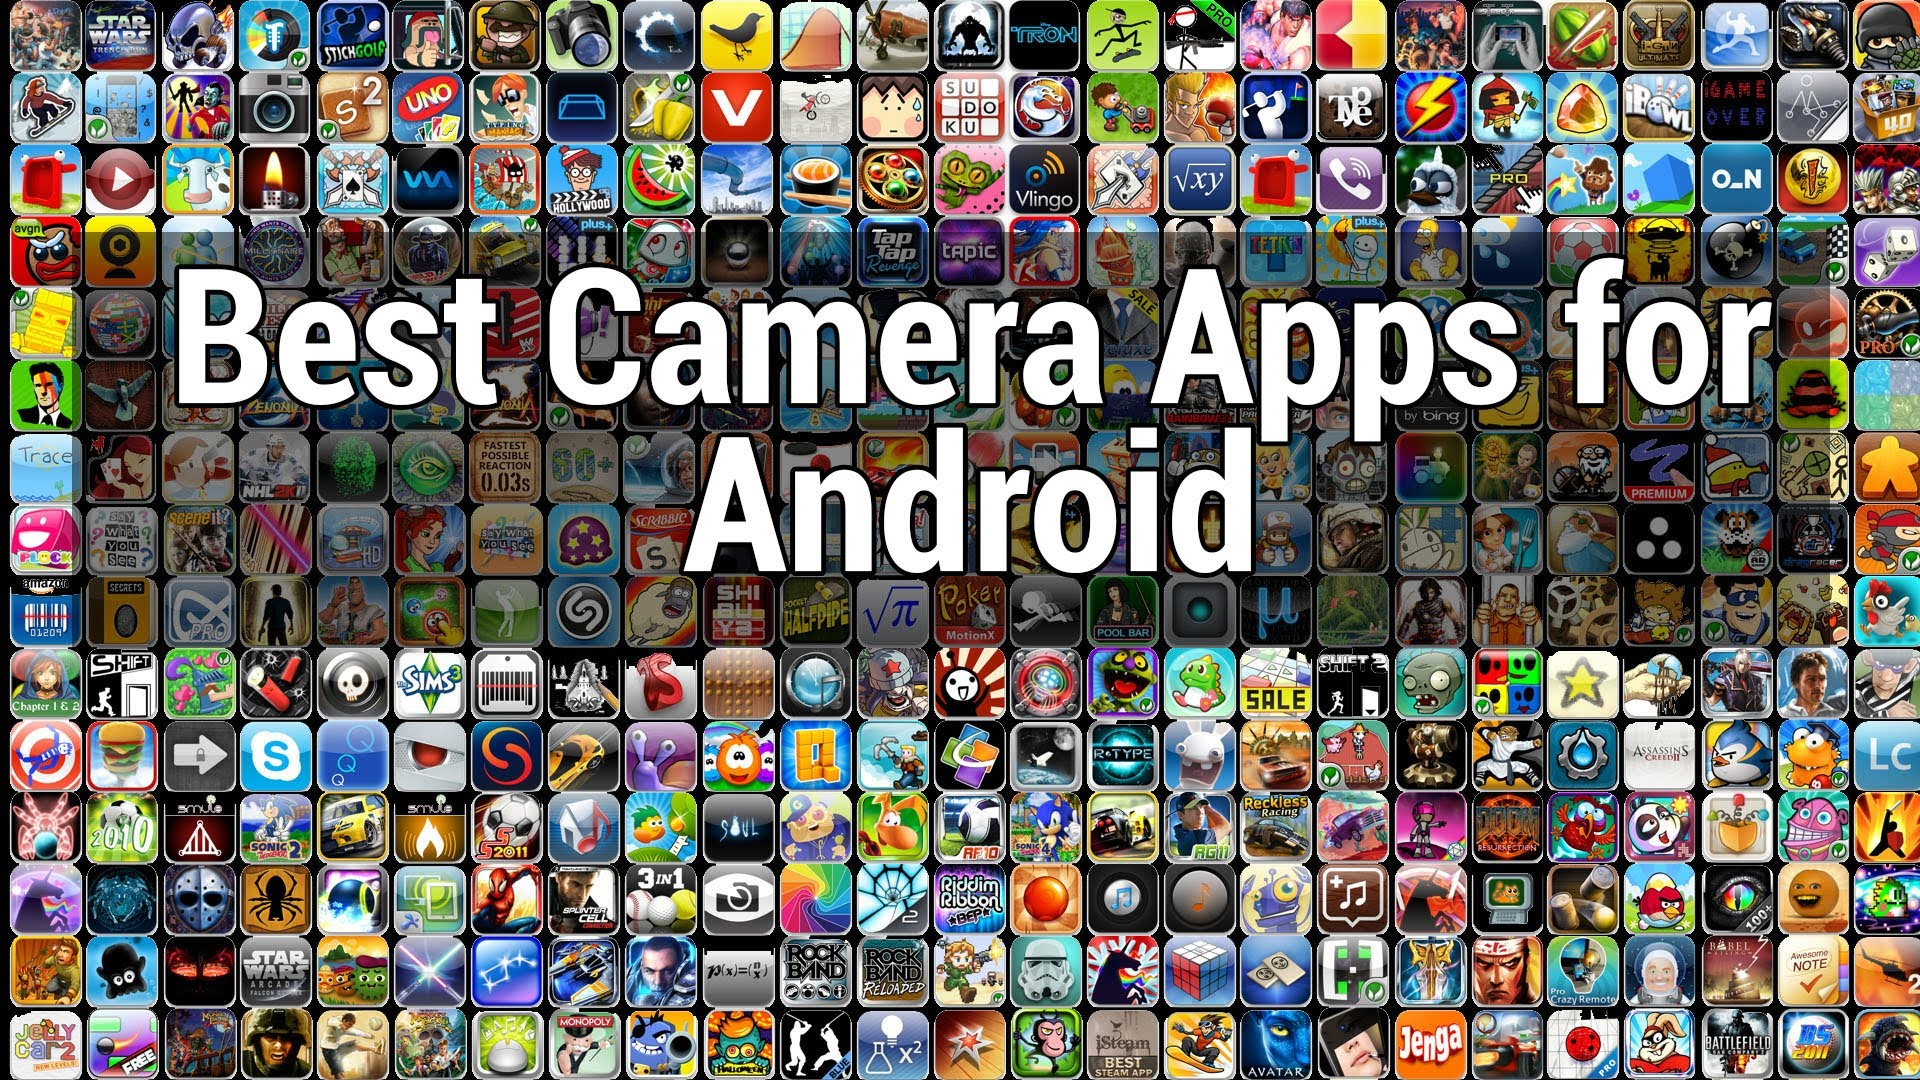 Top 10 Best Android Camera Apps